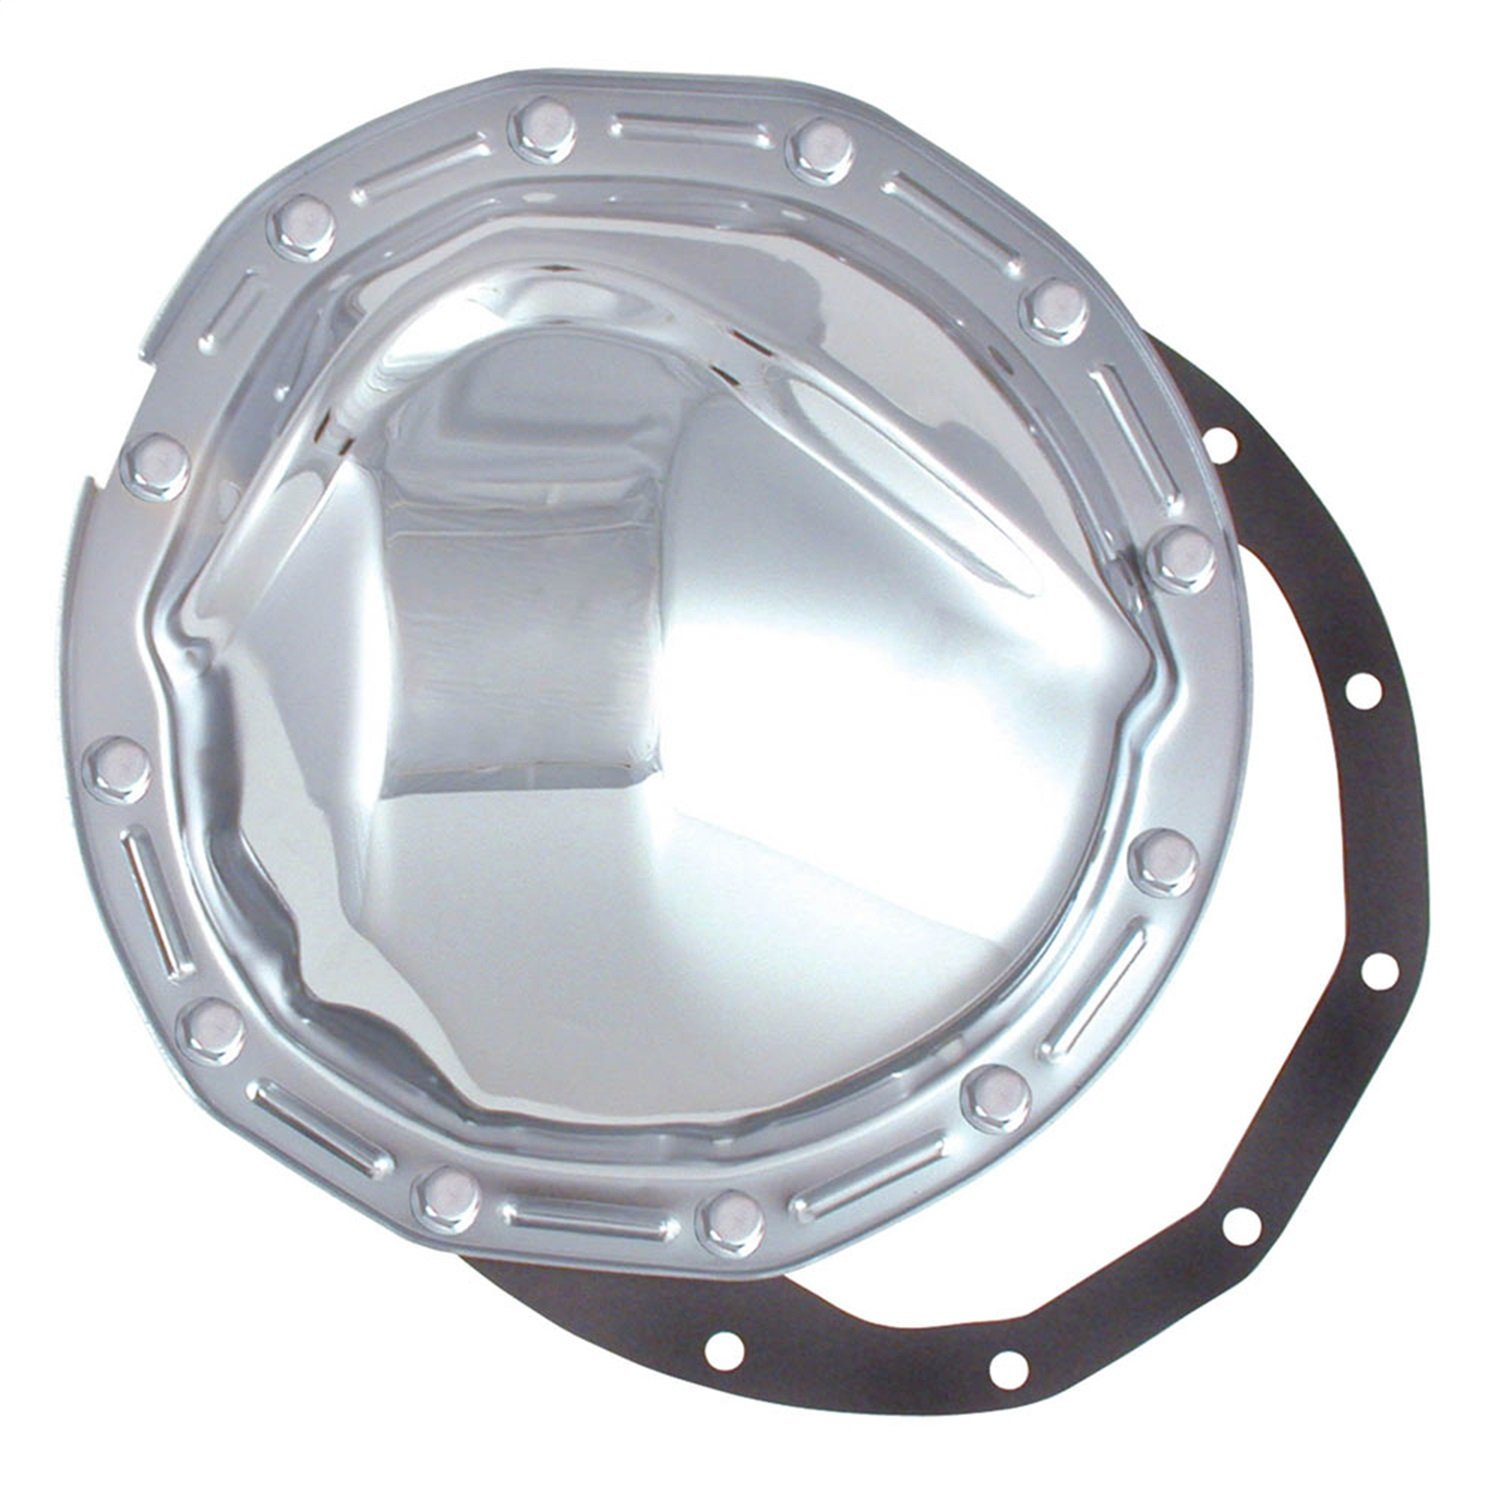 Spectre Performance 6071 Chrome 12-Bolt Differential Cover for GM